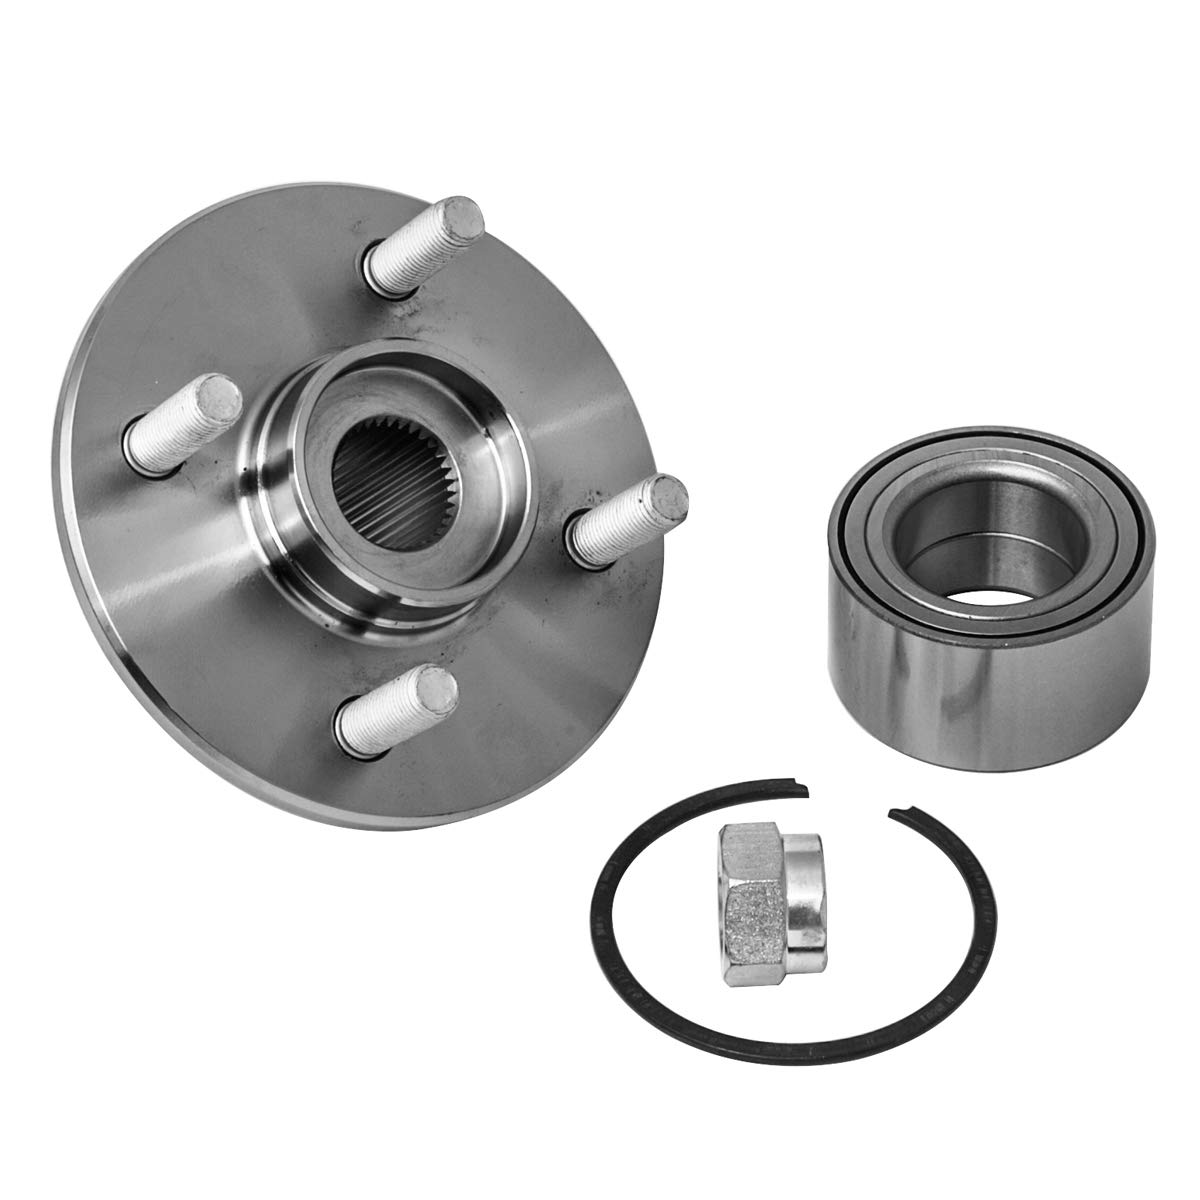 4 Lug Hub Repair Kit Front Wheel Hub and Bearing Assembly Left or Right Compatible Saturn SC1 SC2 SL SL1 SL2 SW1 SW2 AUQDD 518514 x2 Pair